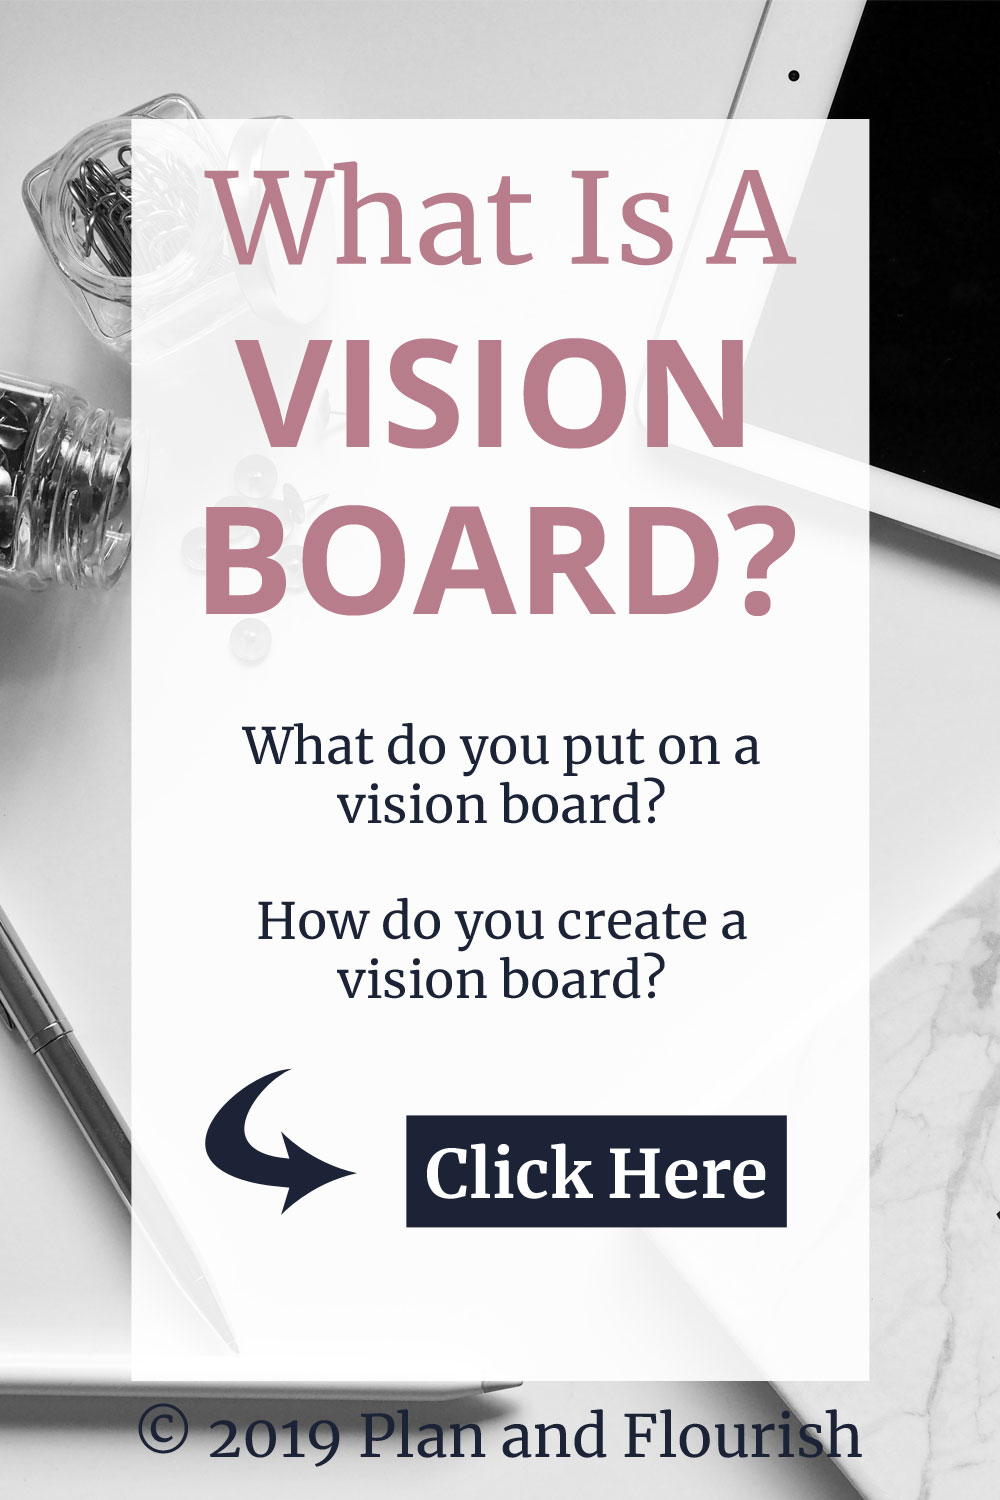 What Is A Vision Board